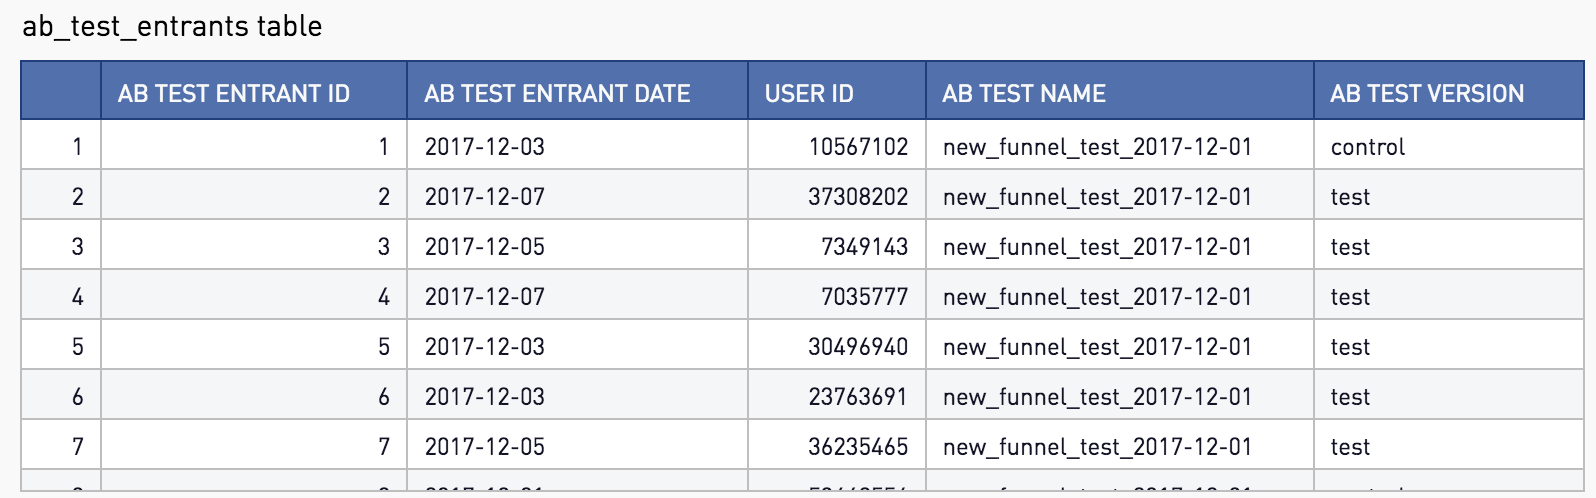 A/B Test Reporting and Visualization in SQL - Ryan Iyengar